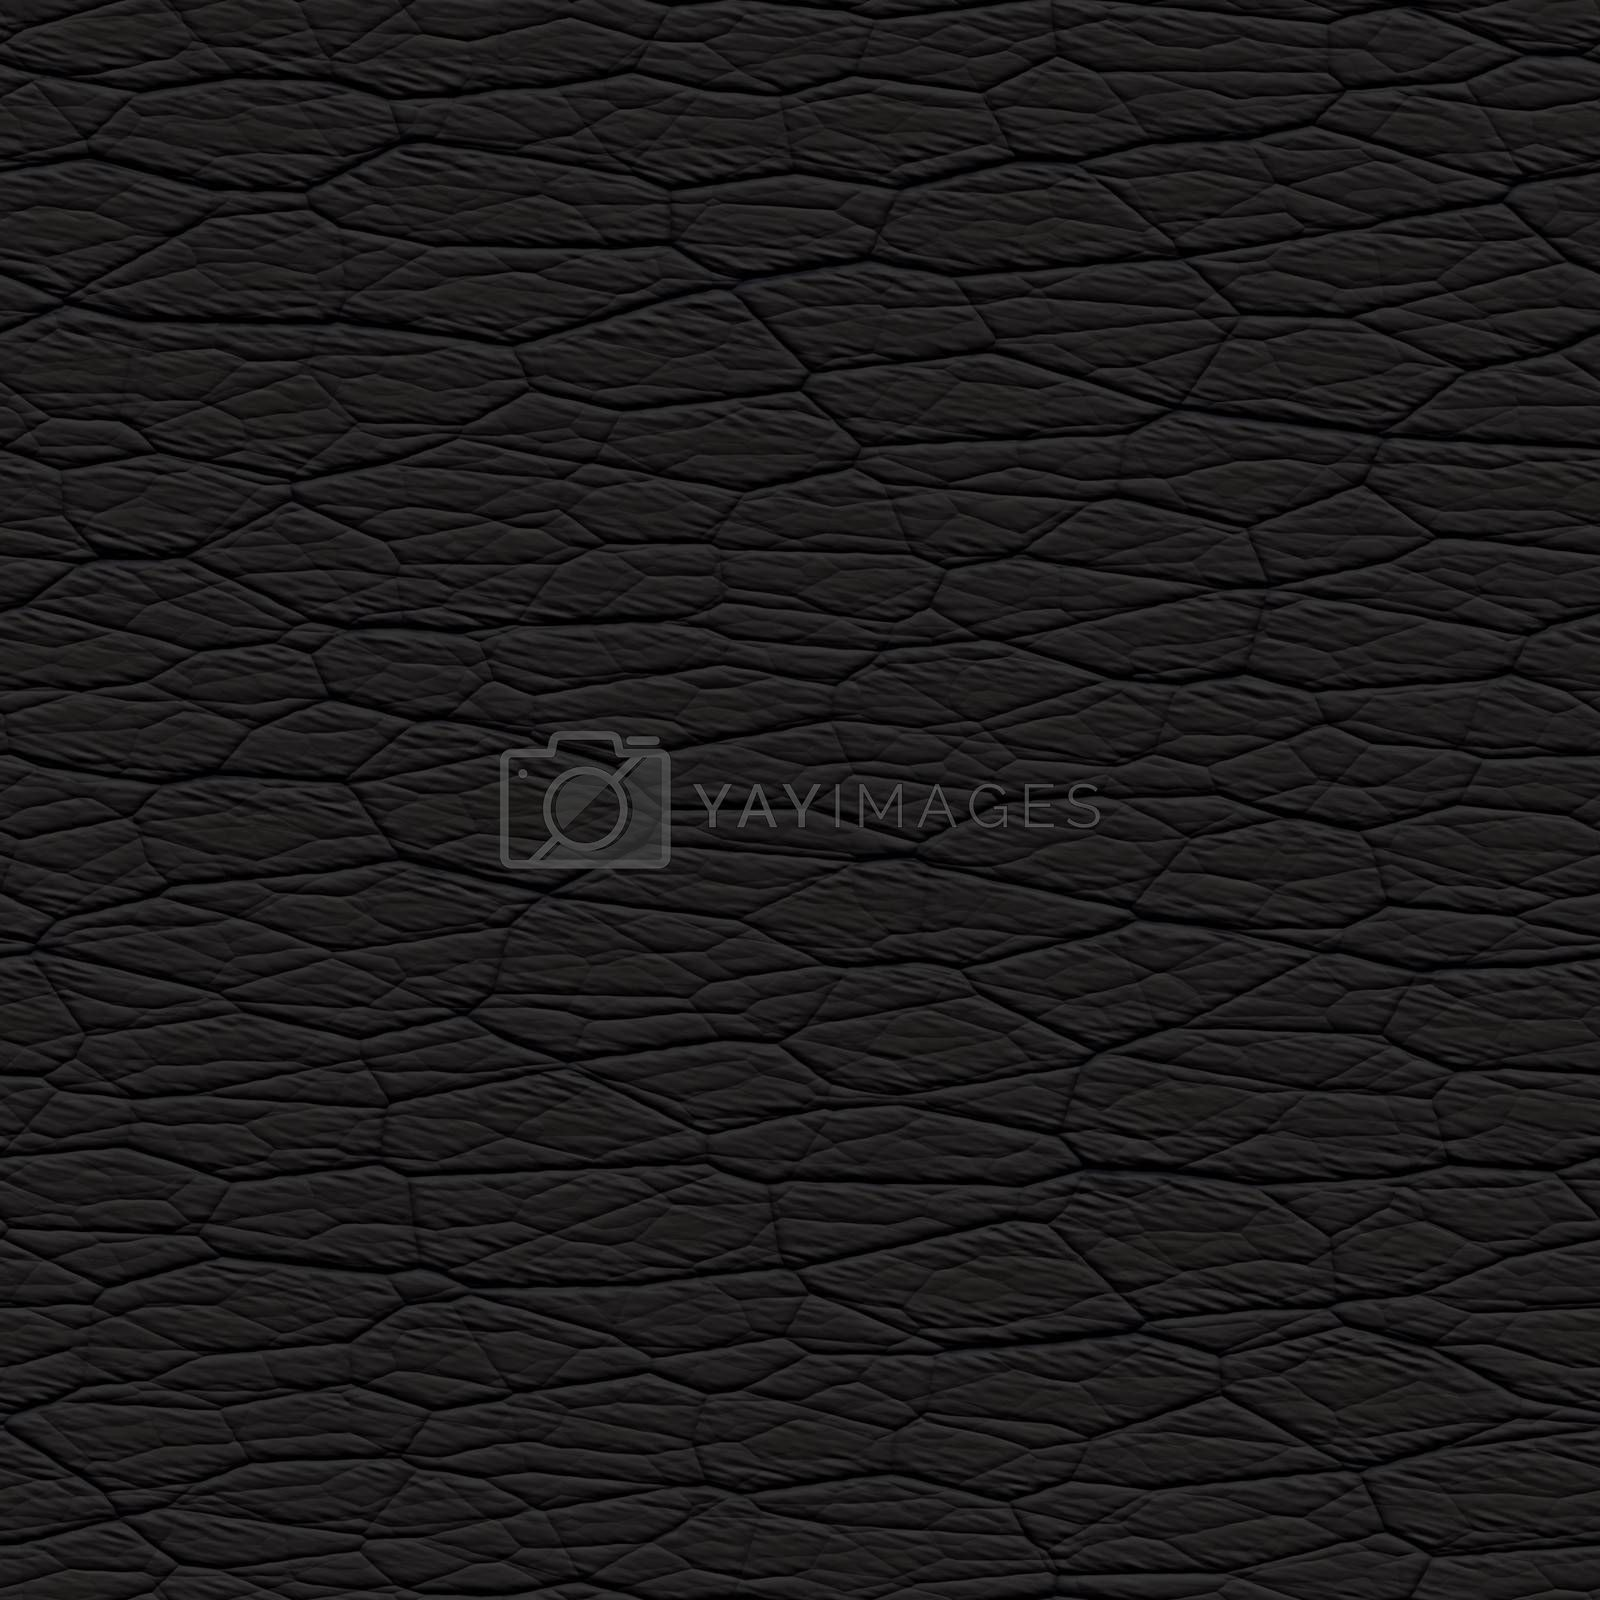 Seamless wrinkled black leather textured material that works as a pattern in any direction.